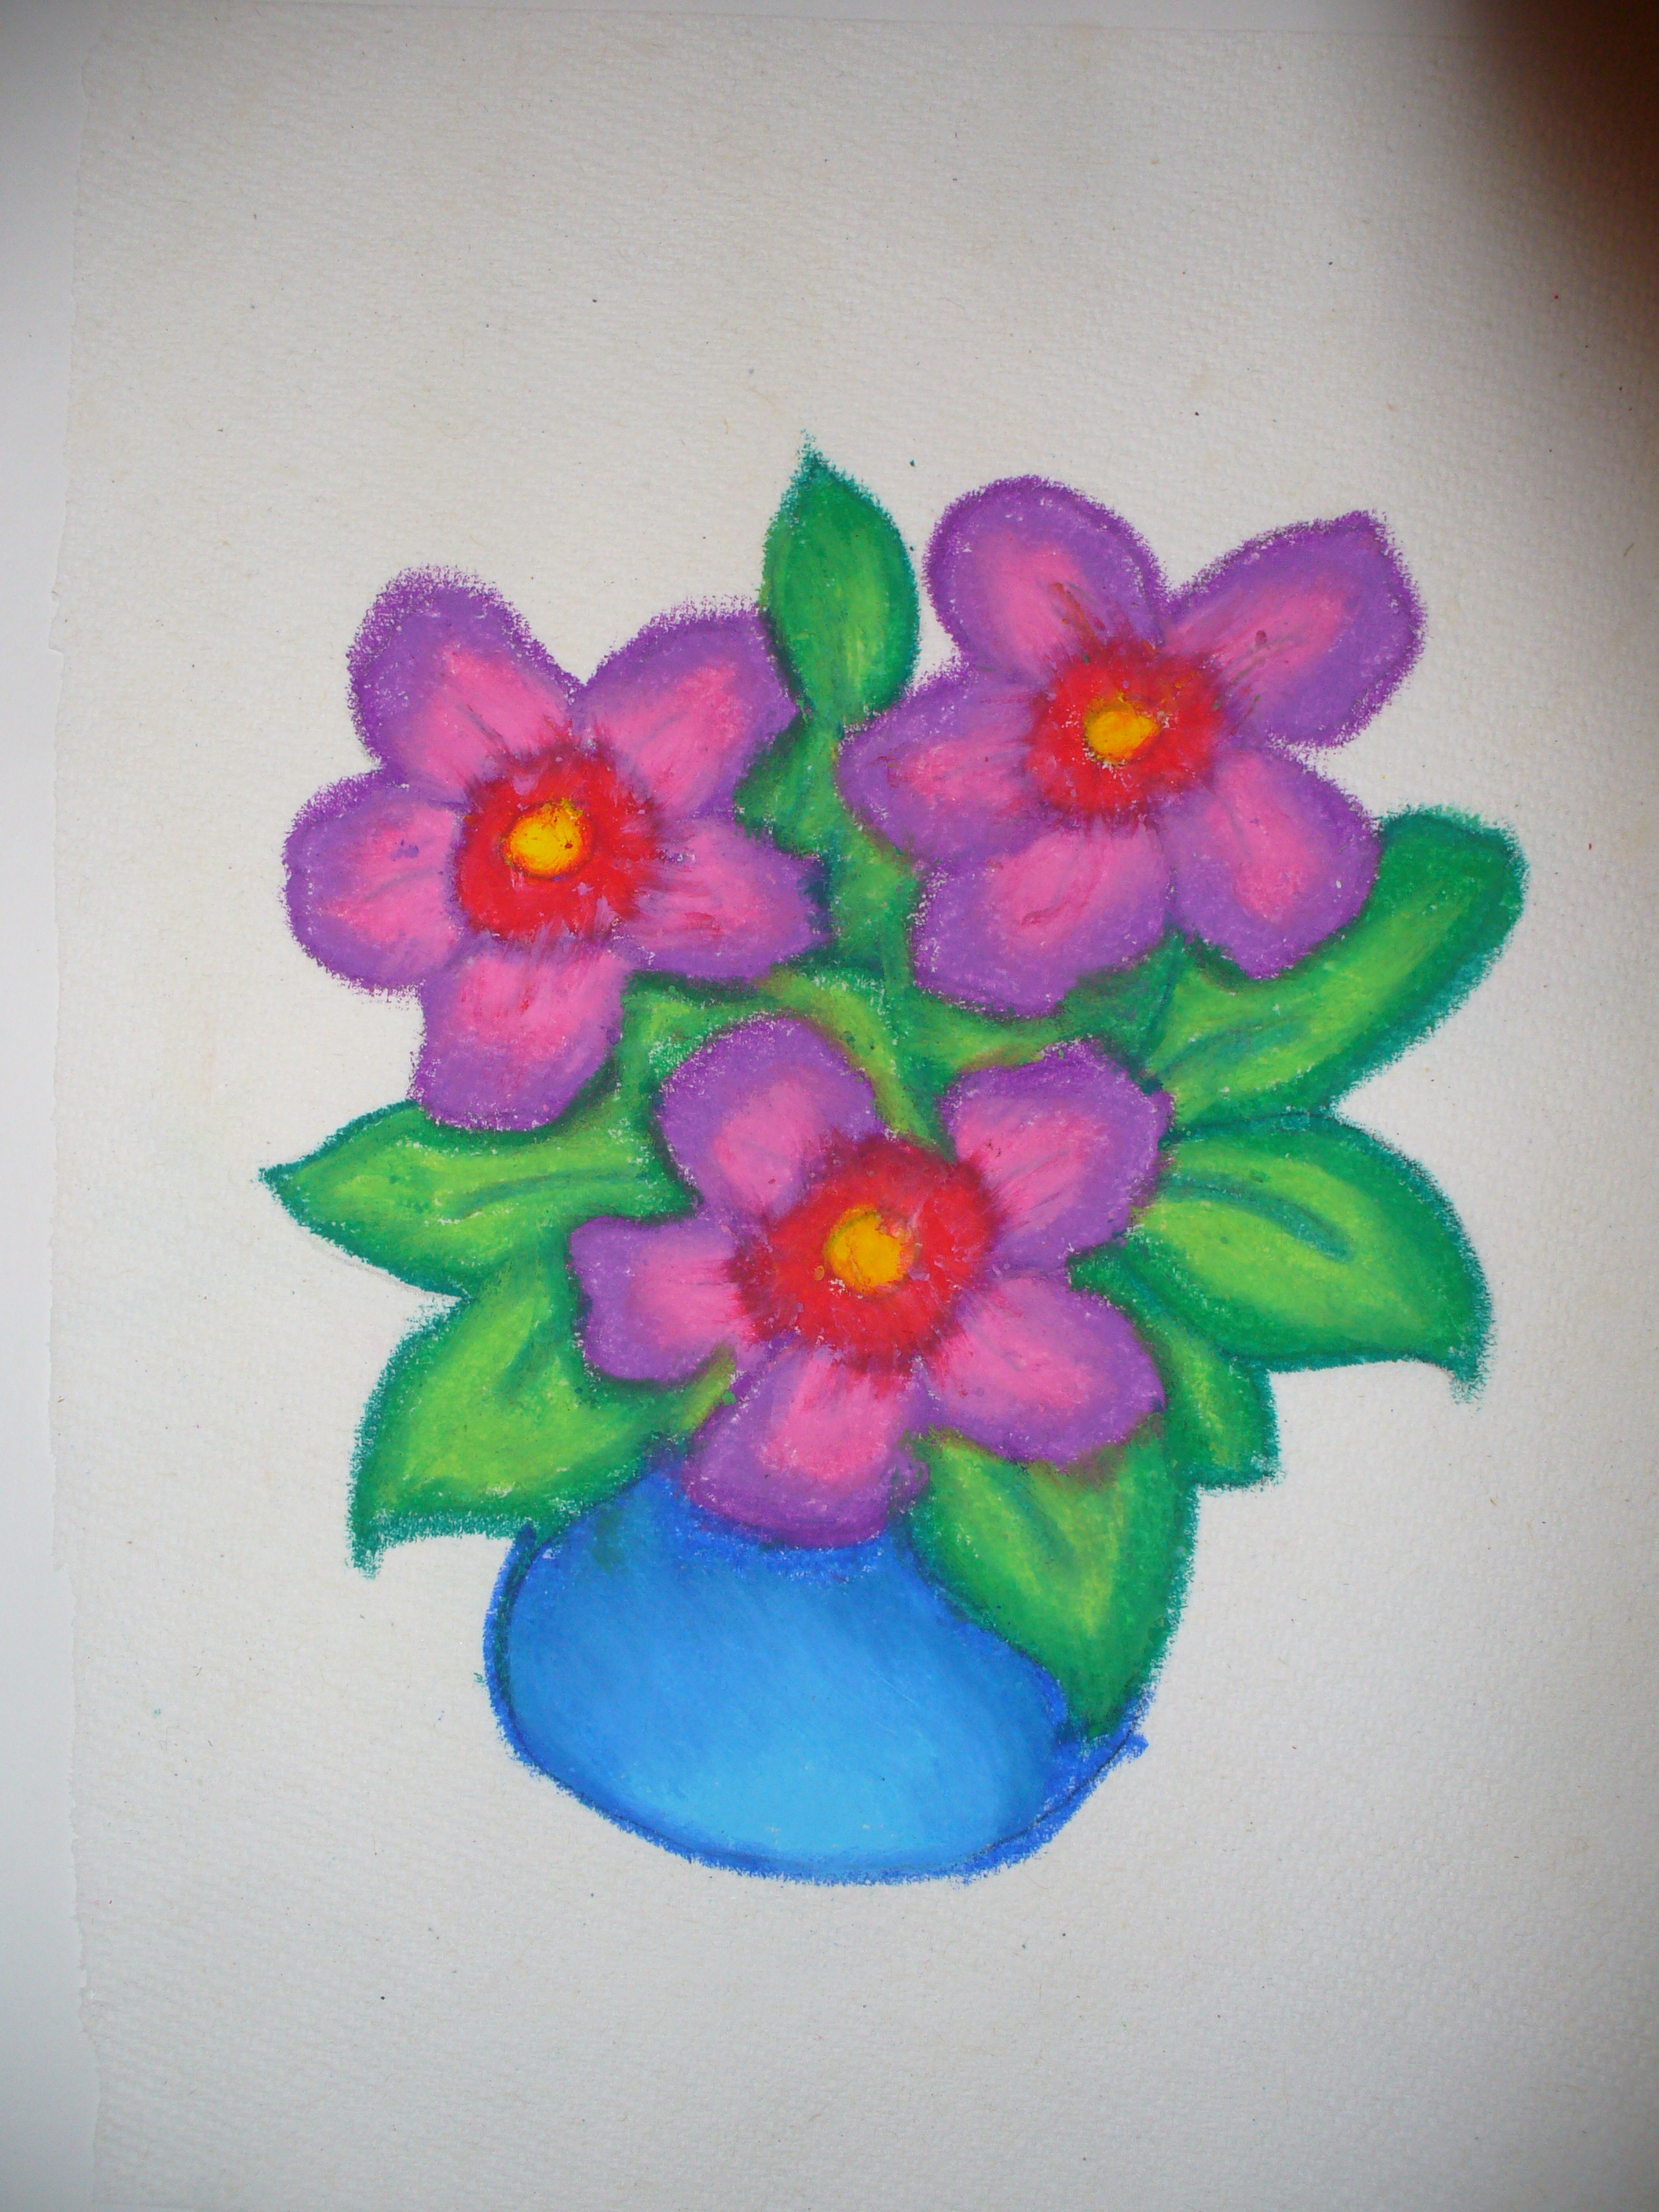 Oil Pastel Potted Flowers by Calia386 on deviantART